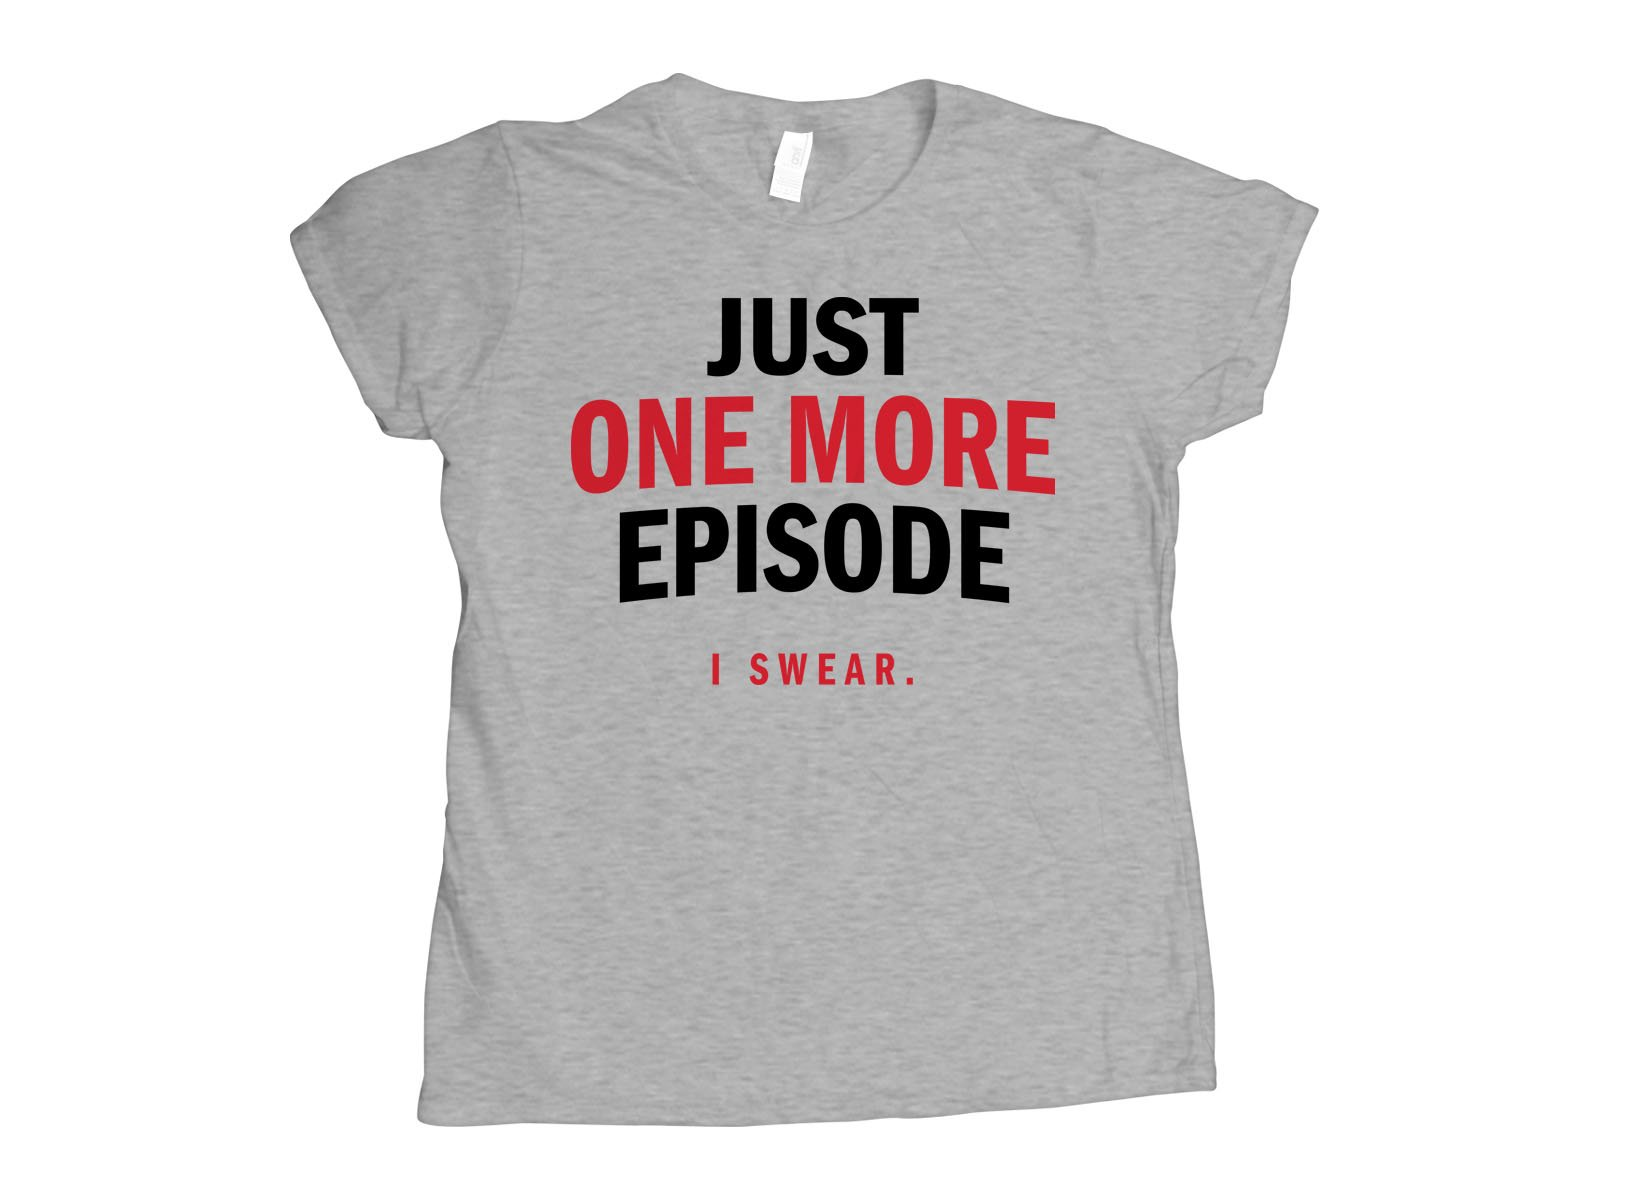 Just One More Episode on Womens T-Shirt